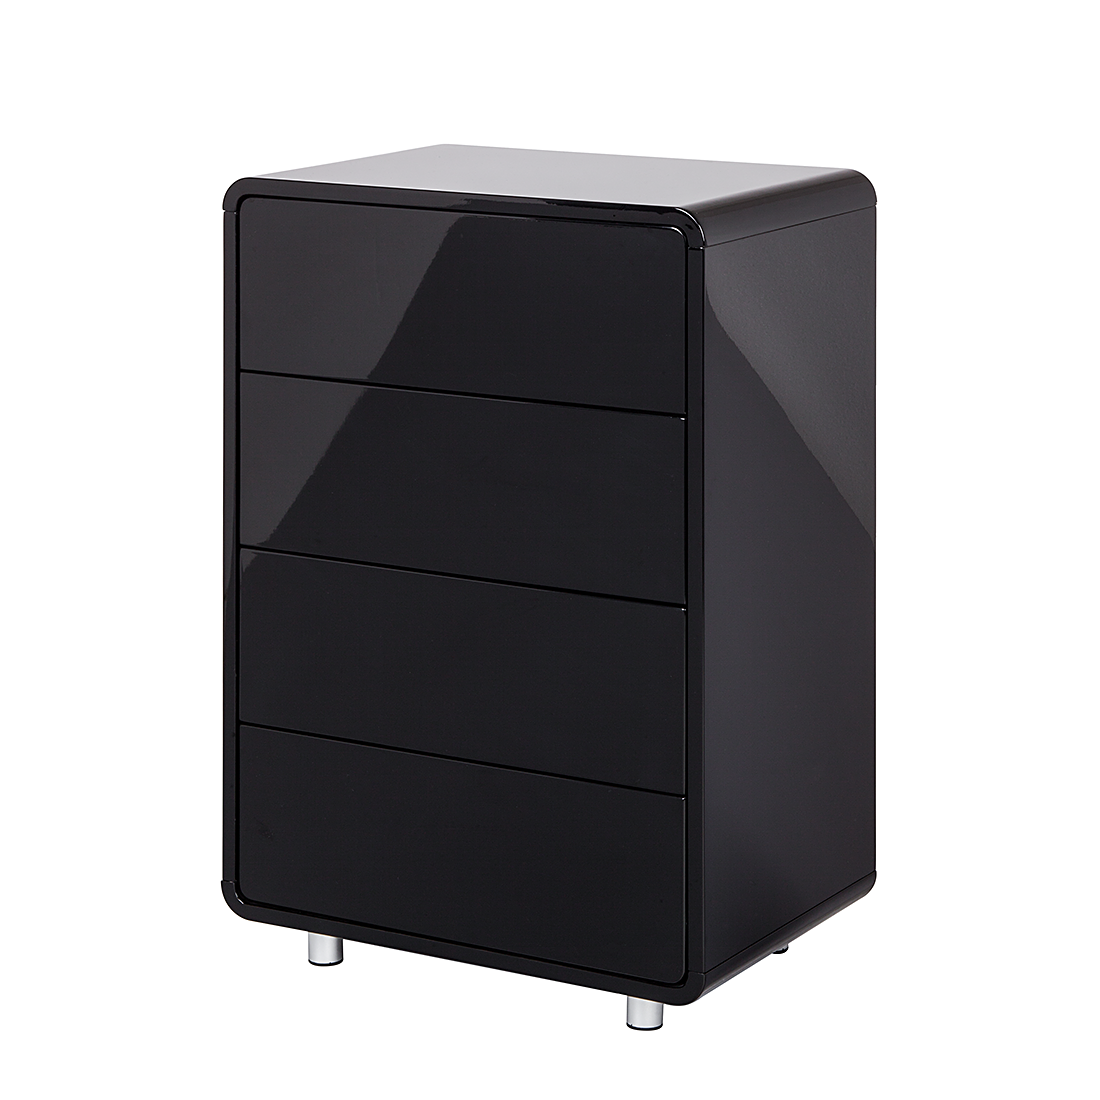 kommode 4 schubladen mdf schwarz hochglanz retro anrichte sideboard schrank neu ebay. Black Bedroom Furniture Sets. Home Design Ideas